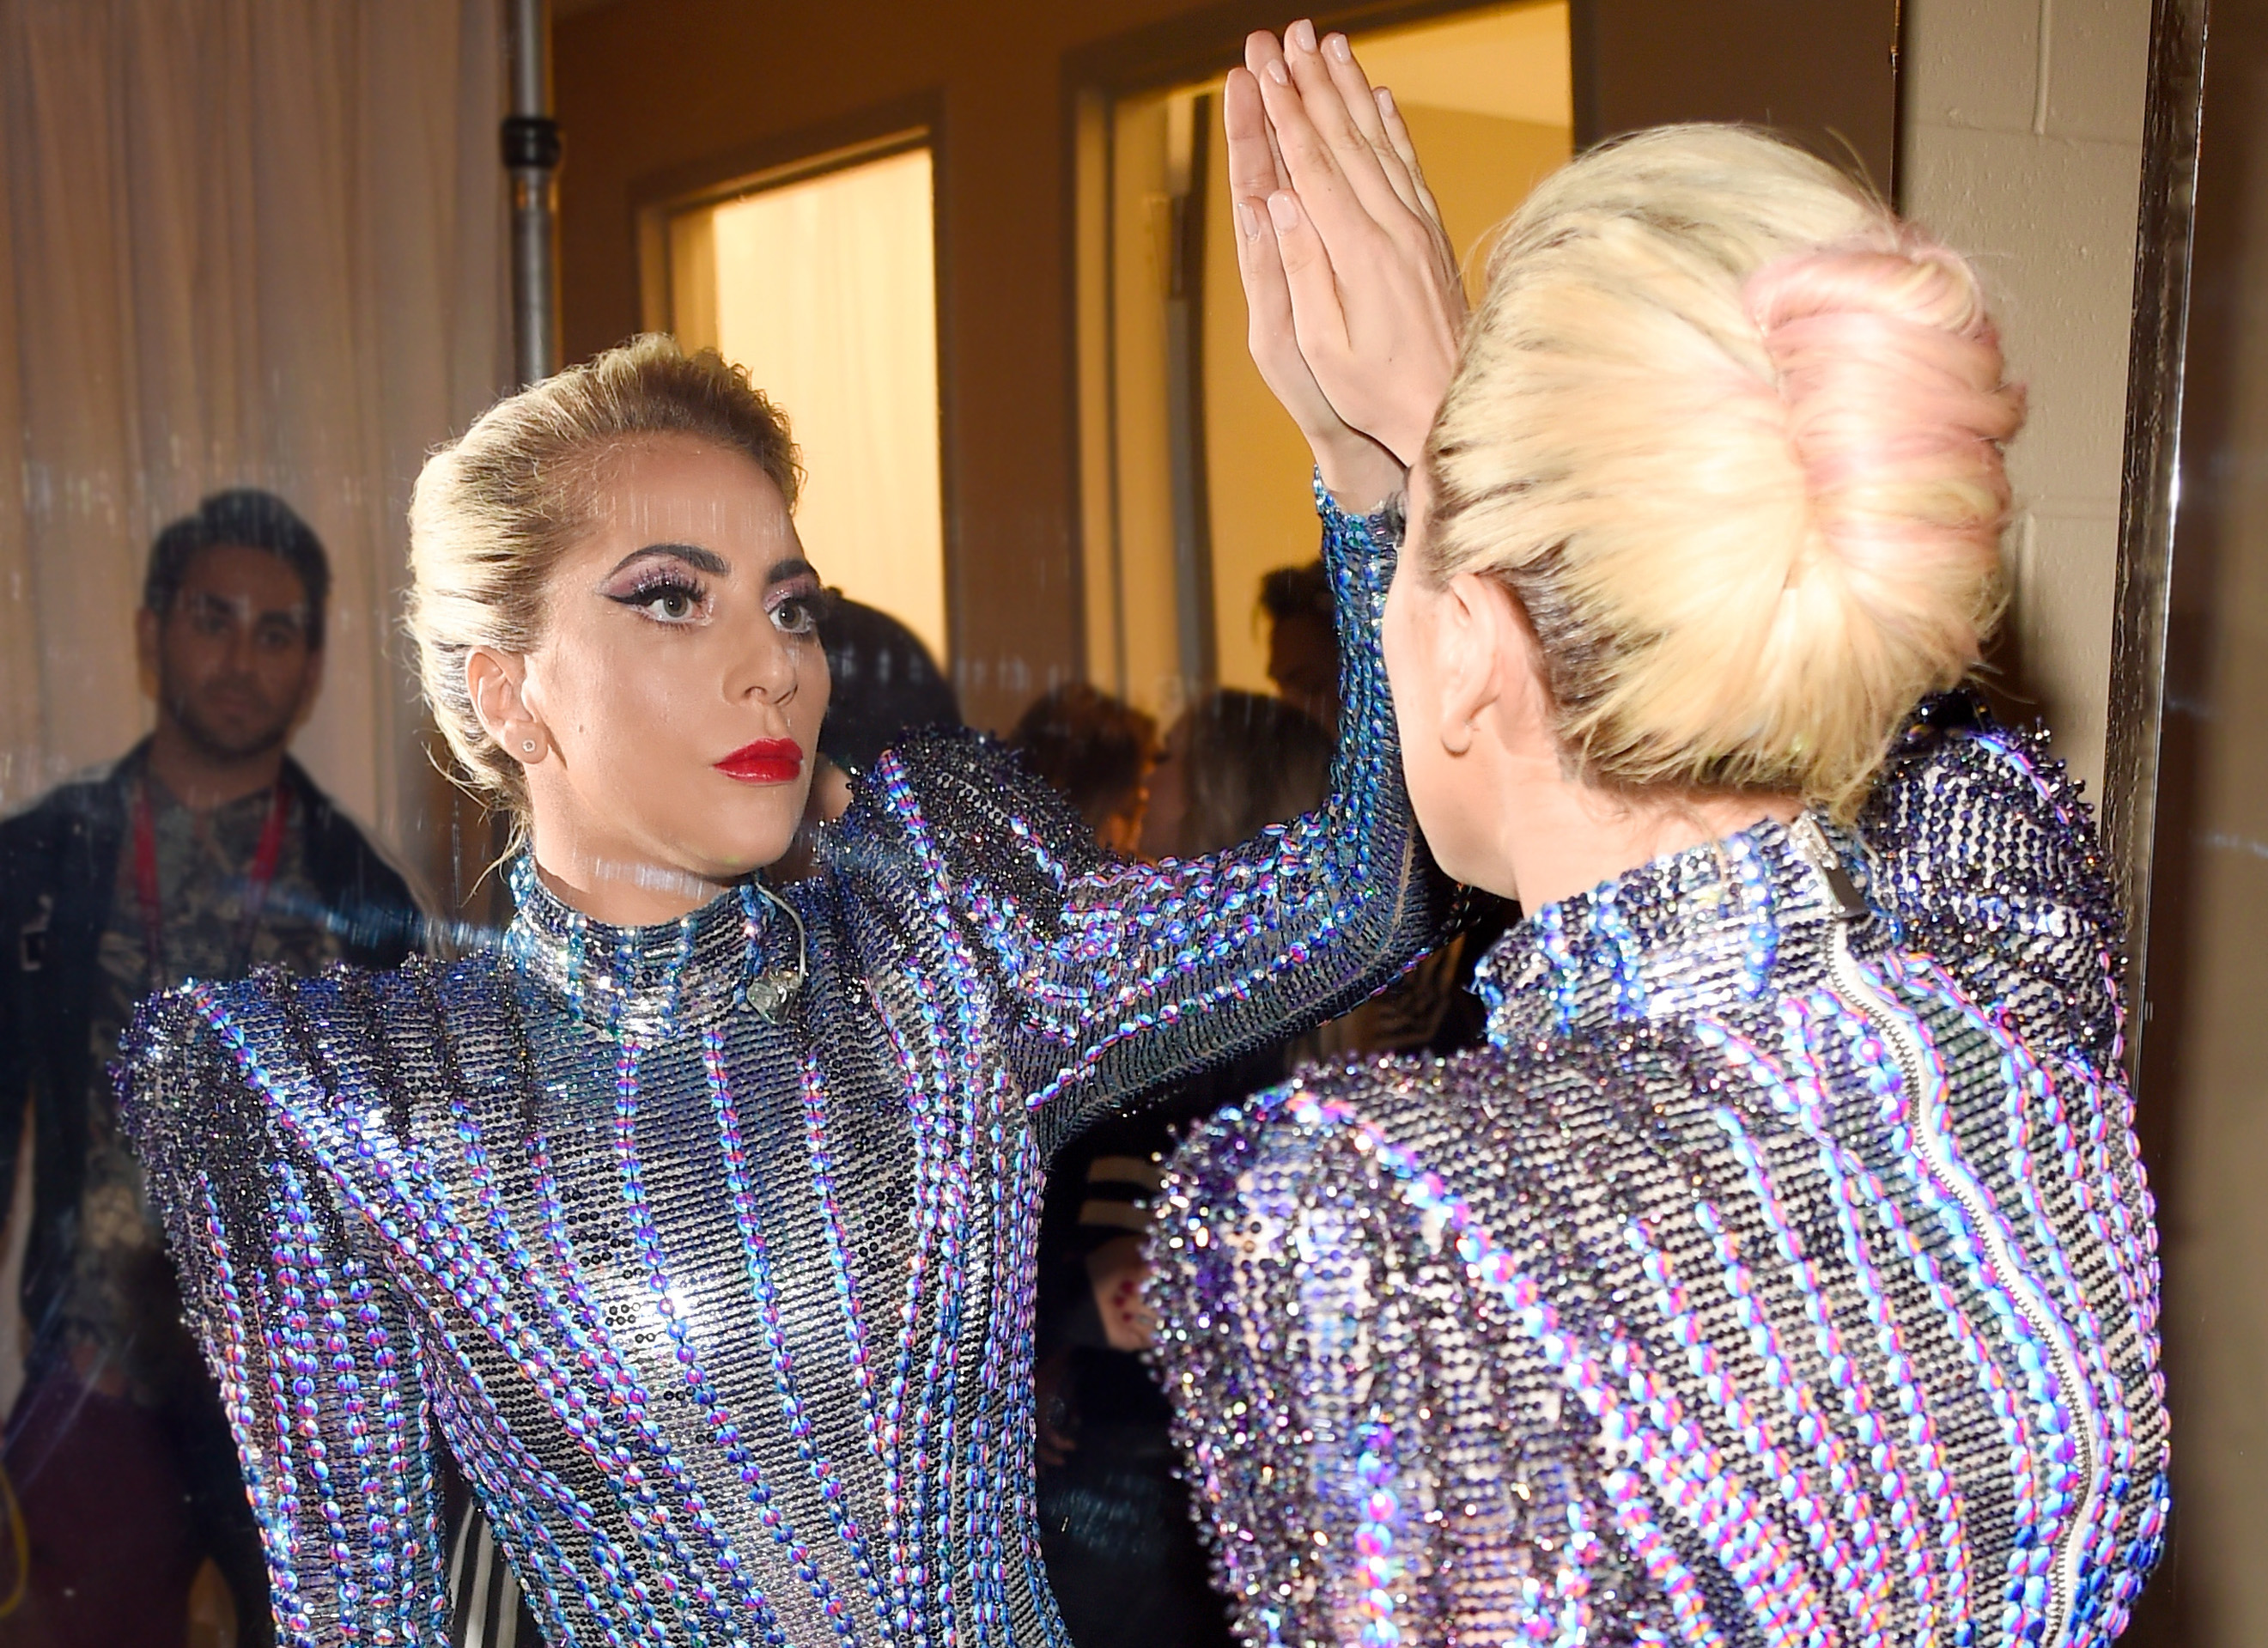 People Think I Look Like Lady Gaga, And It Makes Life Very Weird